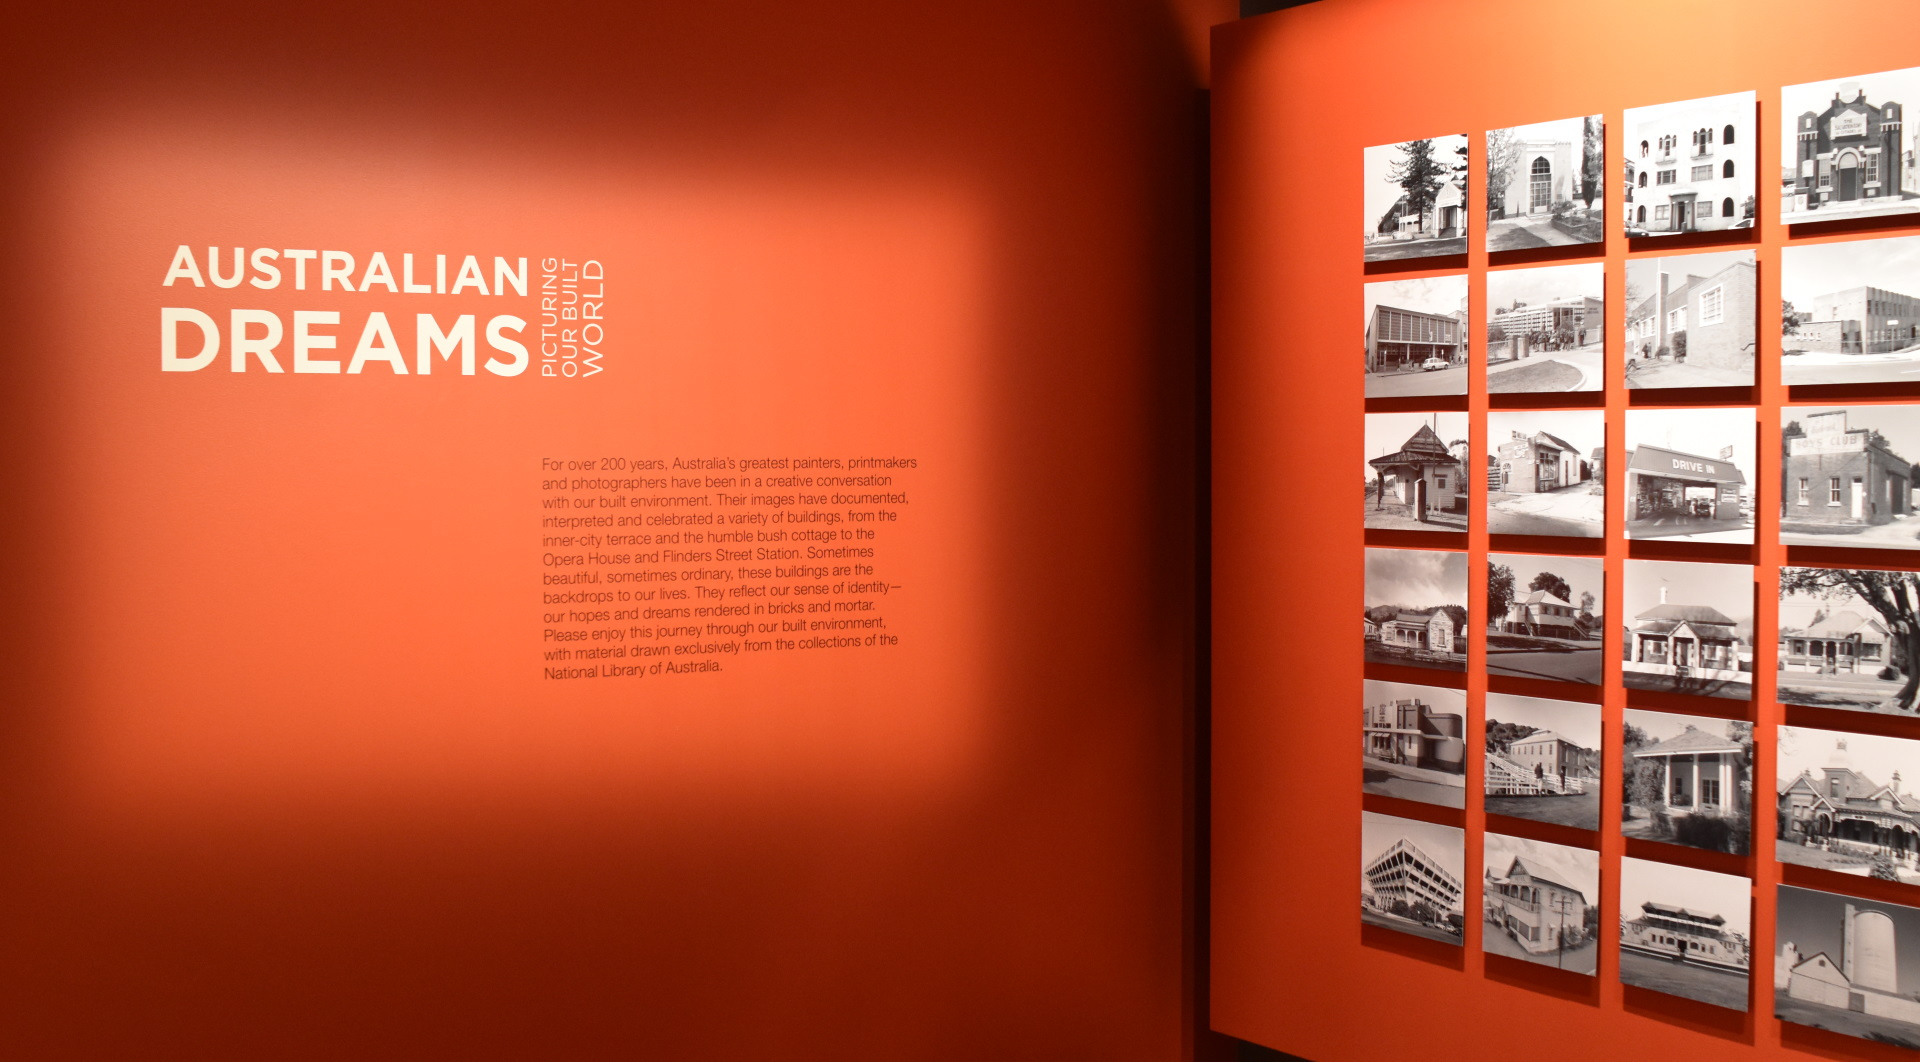 The opening wall of the Australian Dreams exhibition